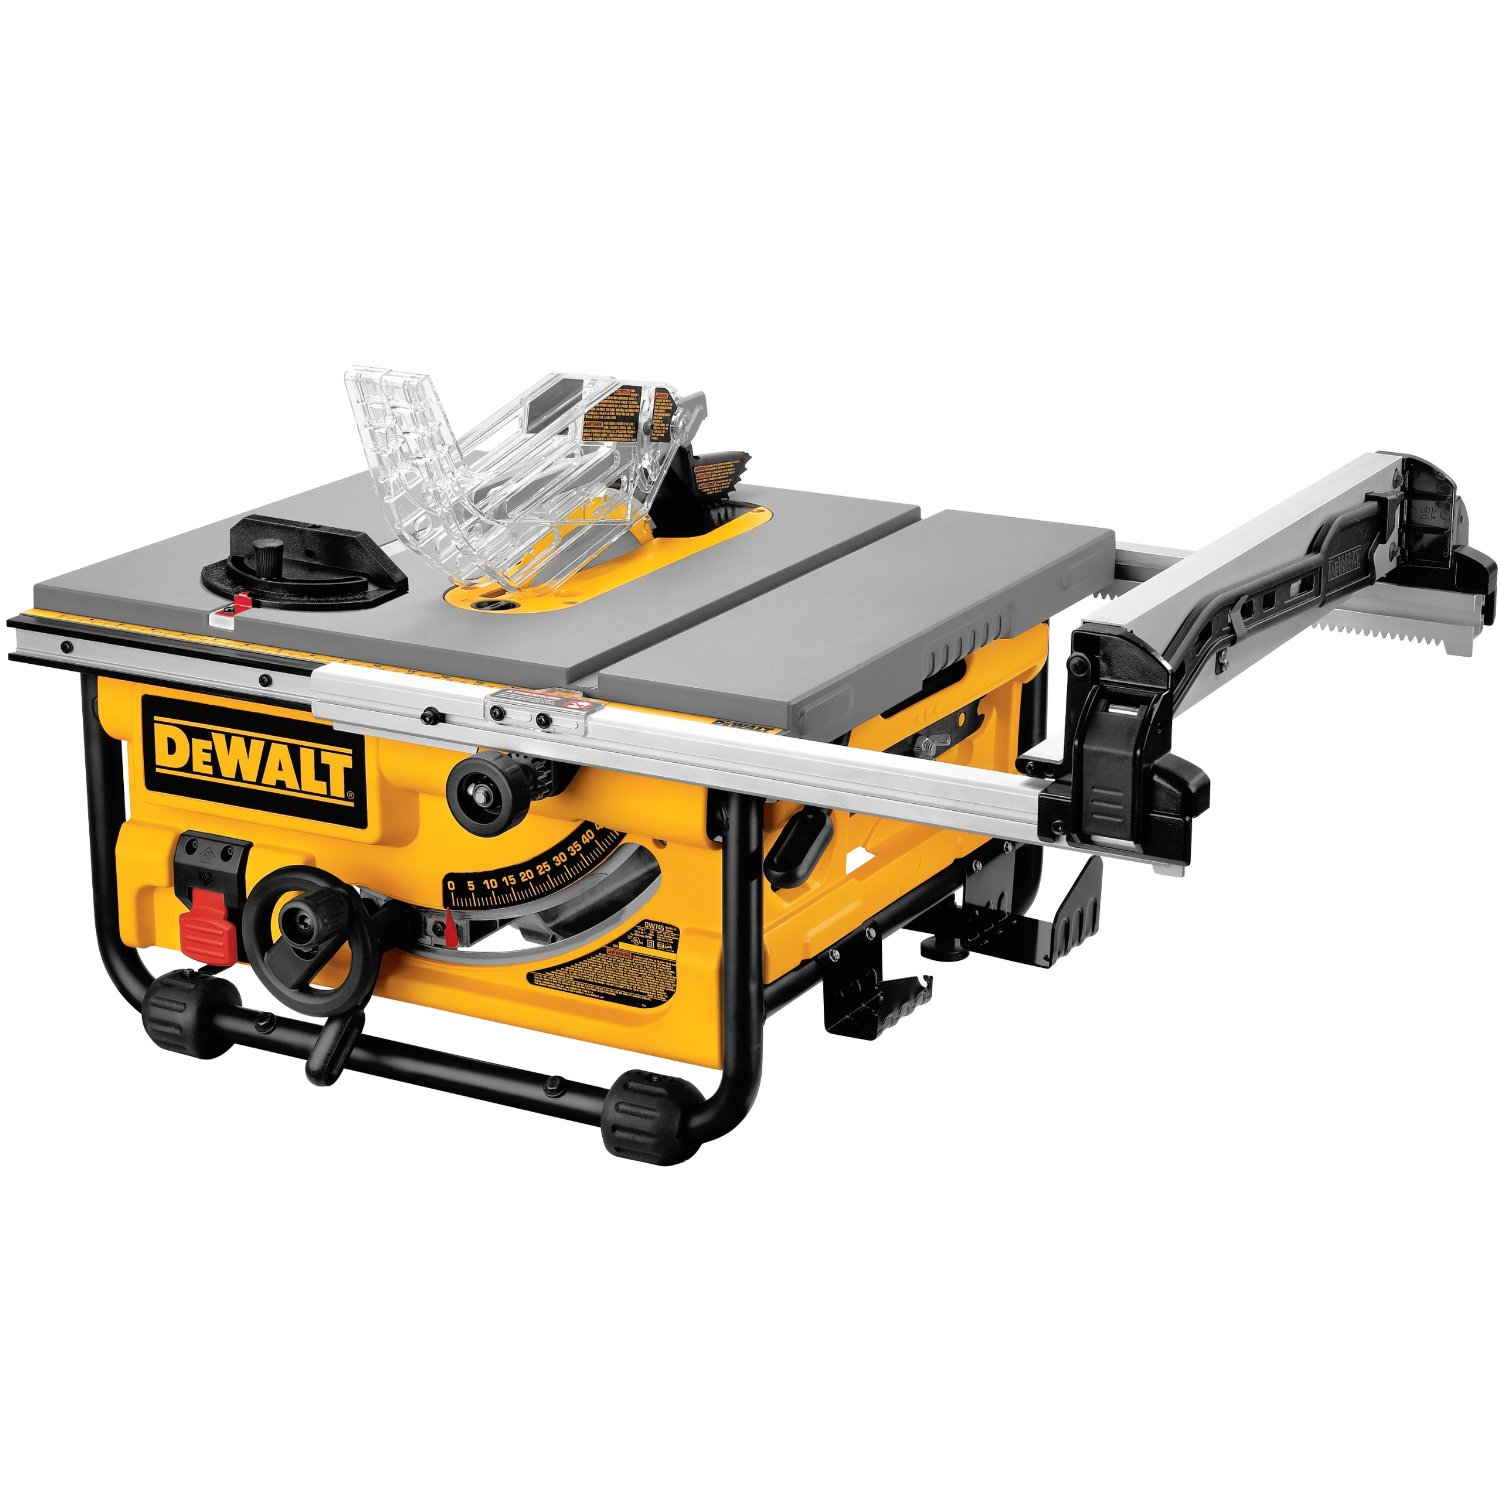 Dewalt dw745 review table saw central dewalt dw745 portable table saws greentooth Choice Image